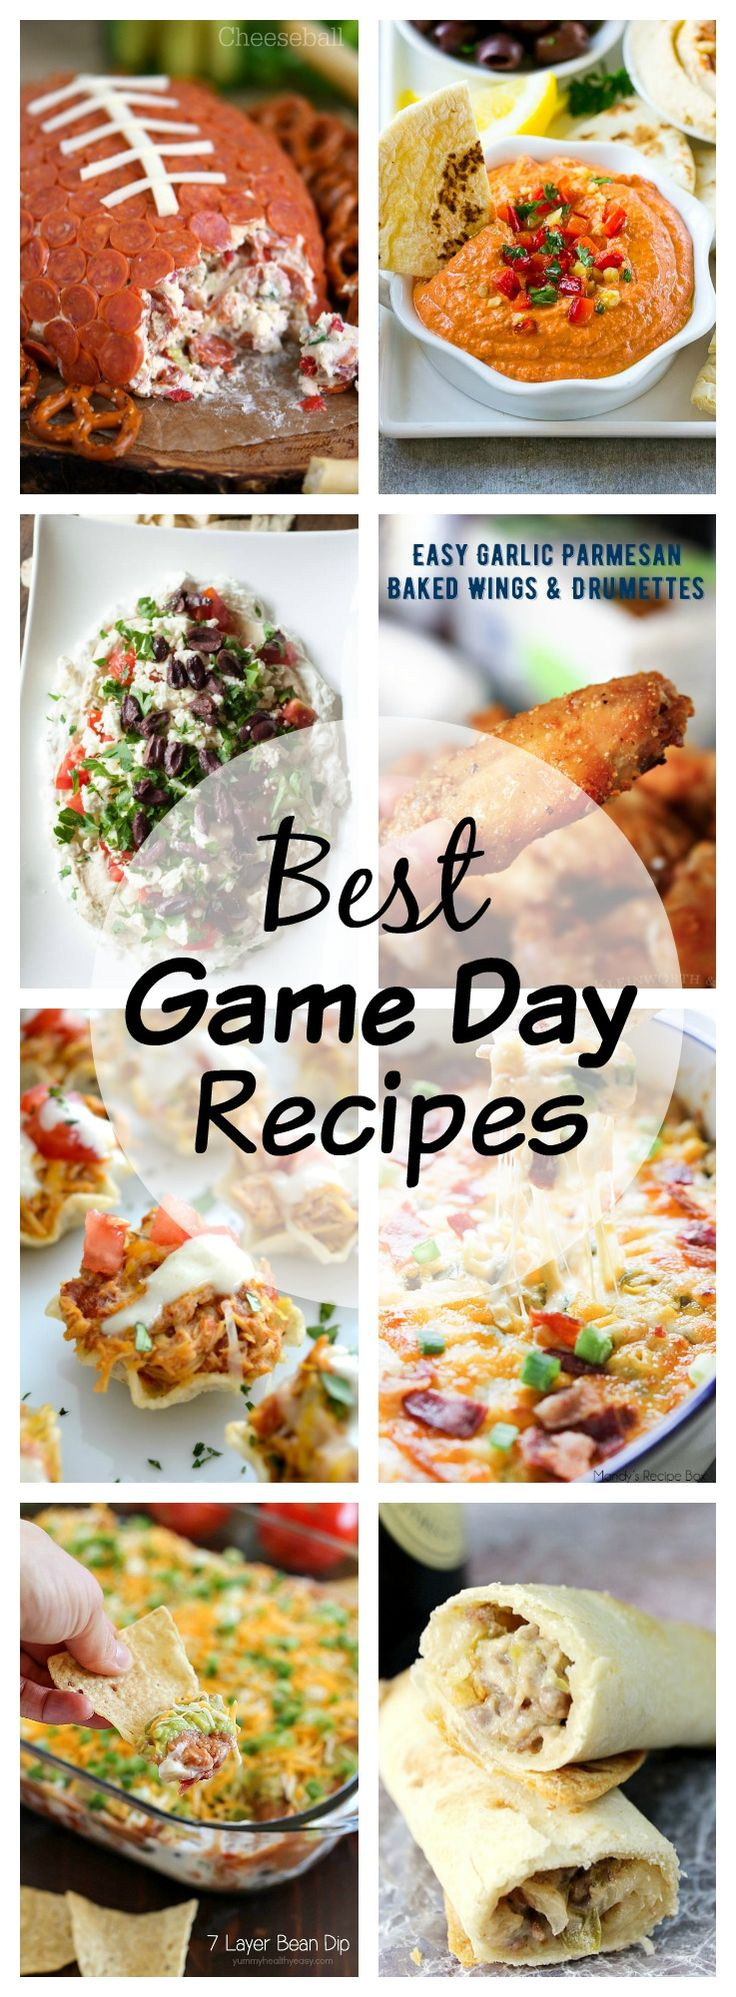 You have to use our list of the Best Game Day Recipes all year long! Any game day viewing needs these recipes.